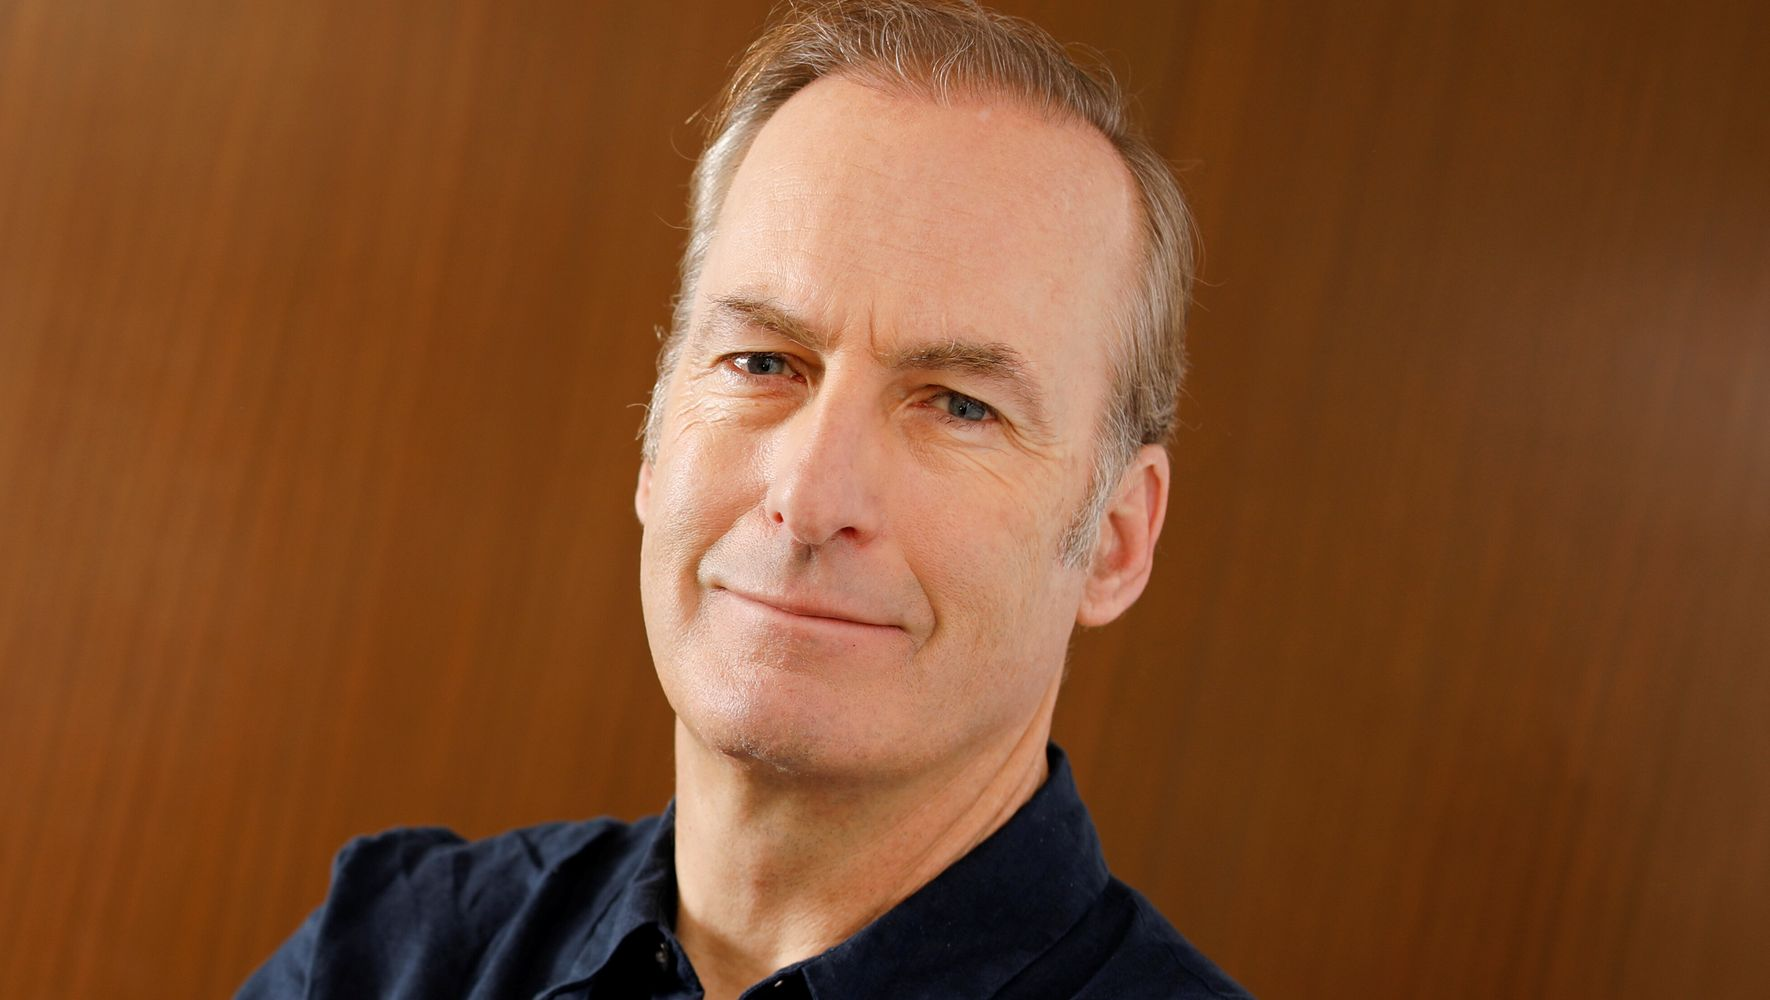 Bob Odenkirk Is Rushed To Hospital After Collapsing On 'Better Call Saul' Set